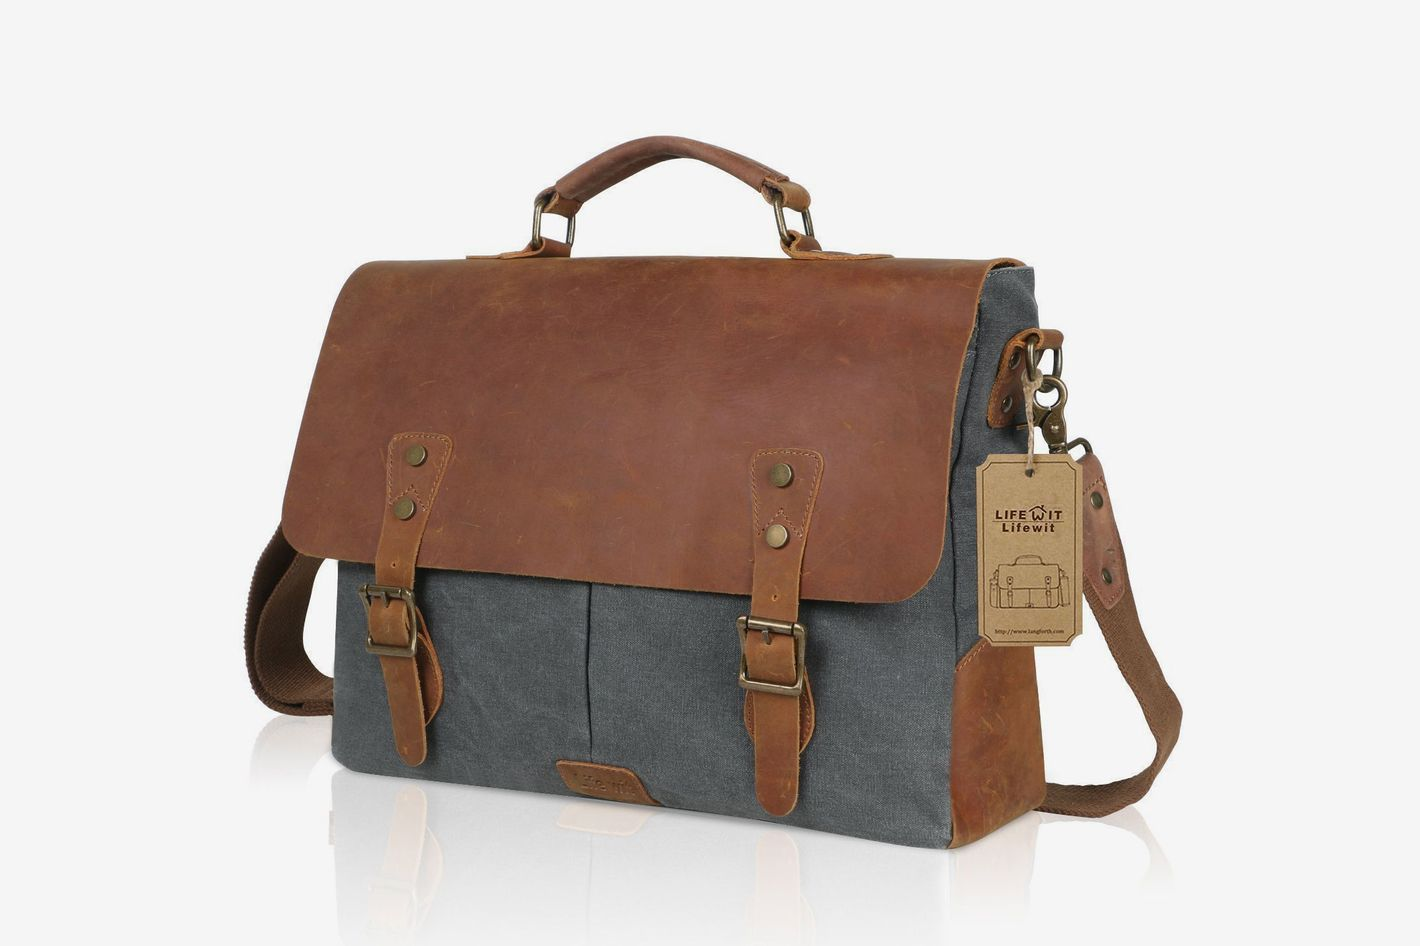 b232785159 11 Best Messenger Bags for Men 2018